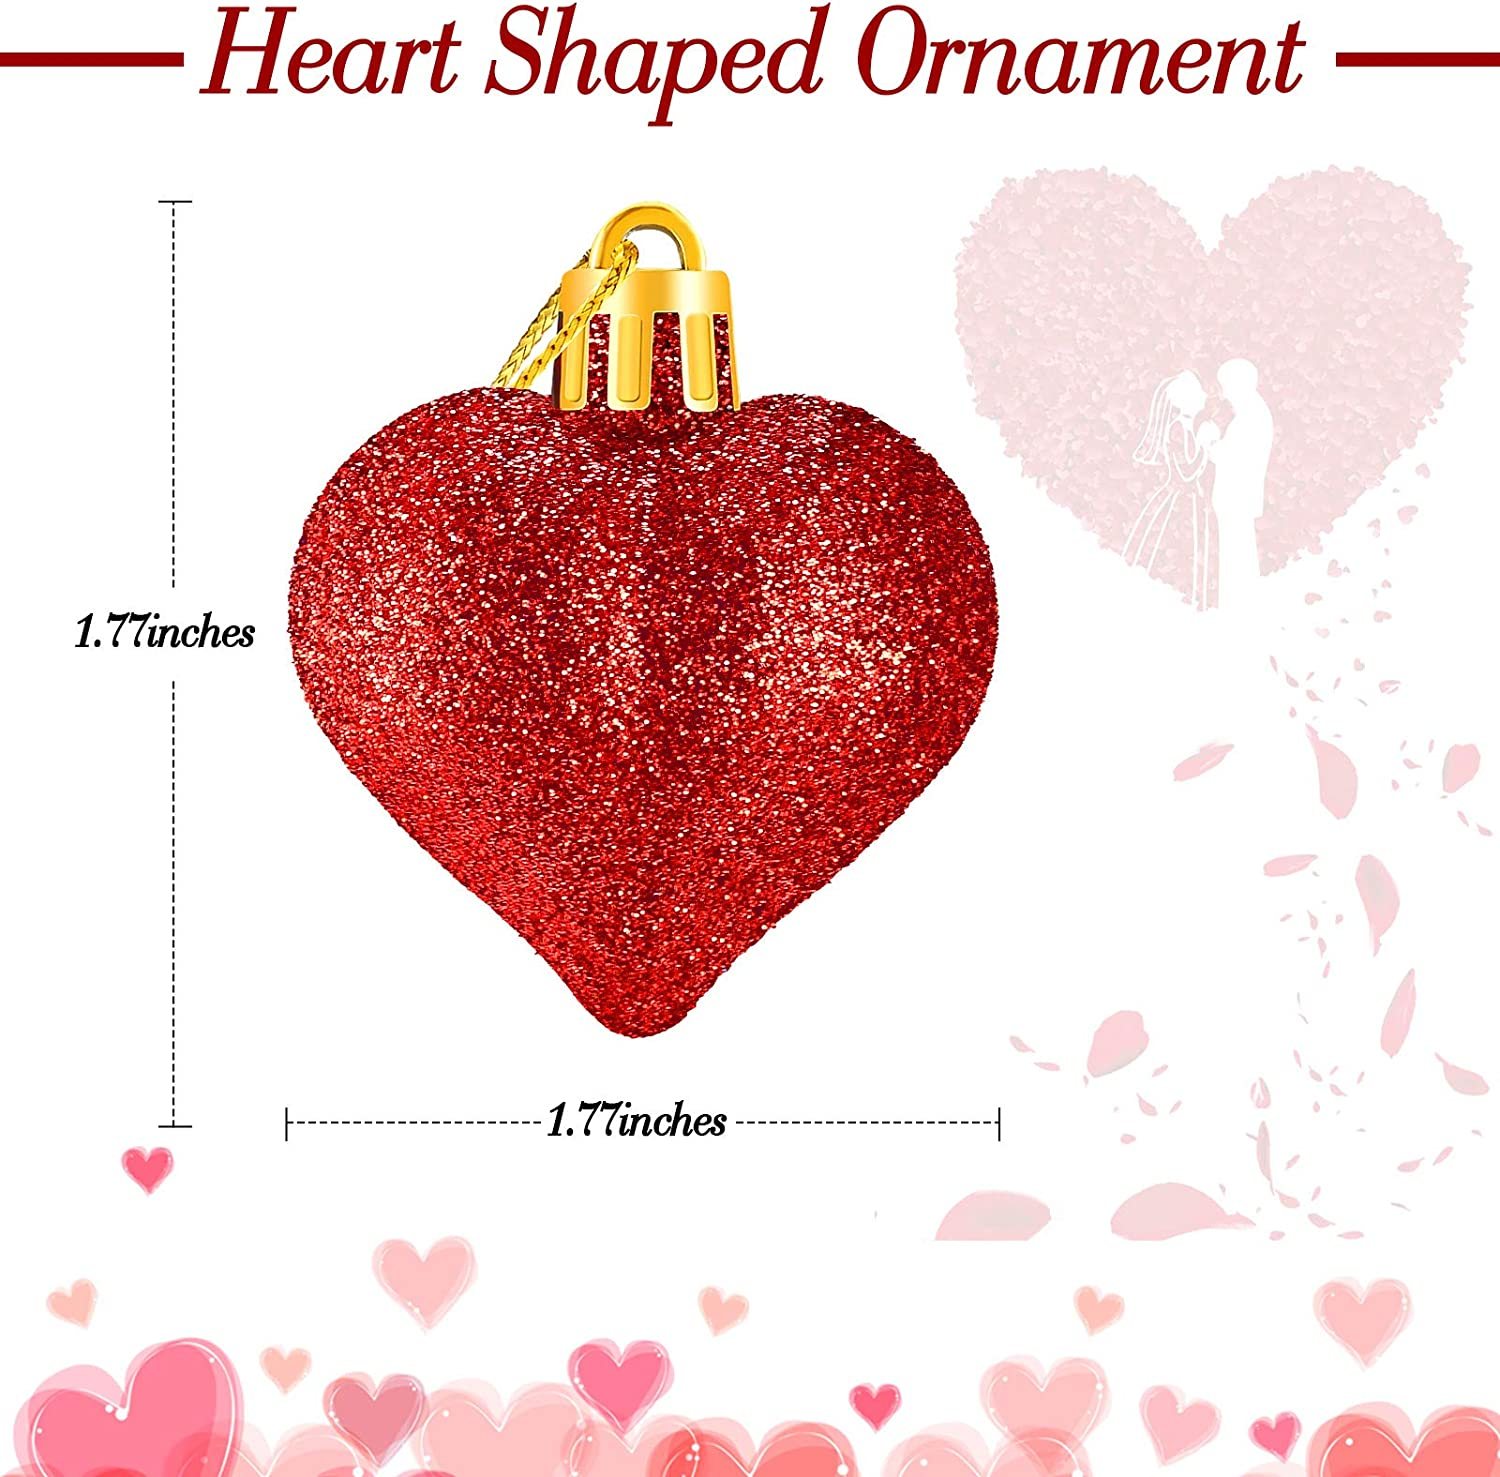 Glitter Valentine Acrylic Heart Ornaments Heart Baubles for Christmas Tree Bauble Wedding and Home Birthday Party Decoration Red WILLBOND 24 Pieces Heart Shaped Ornament